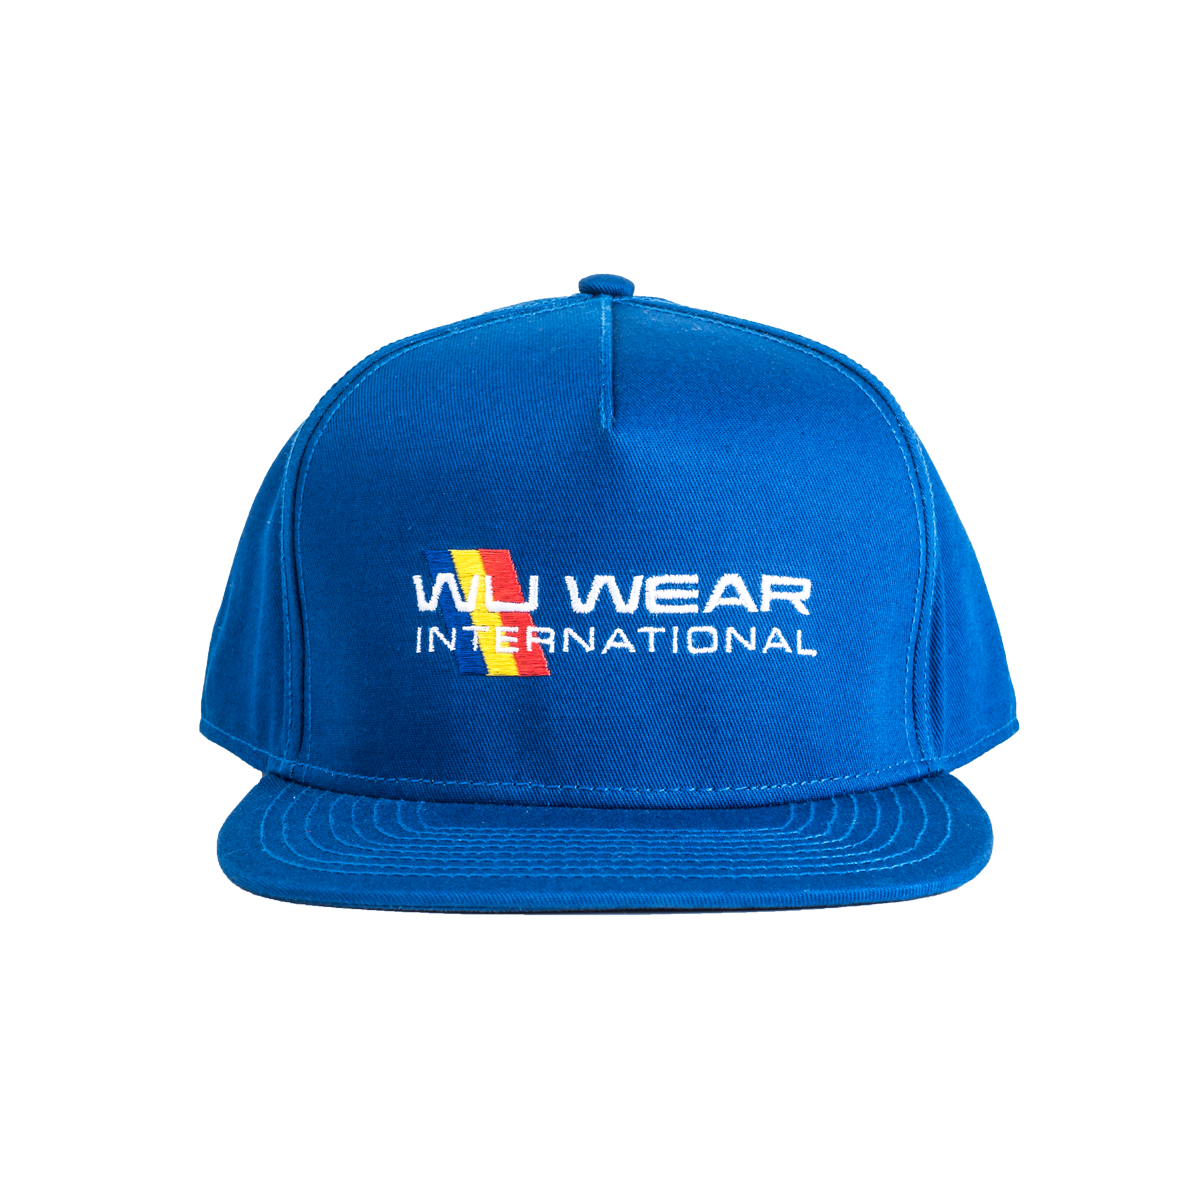 Wu Wear International Snapback Hat - Royal - $29.95